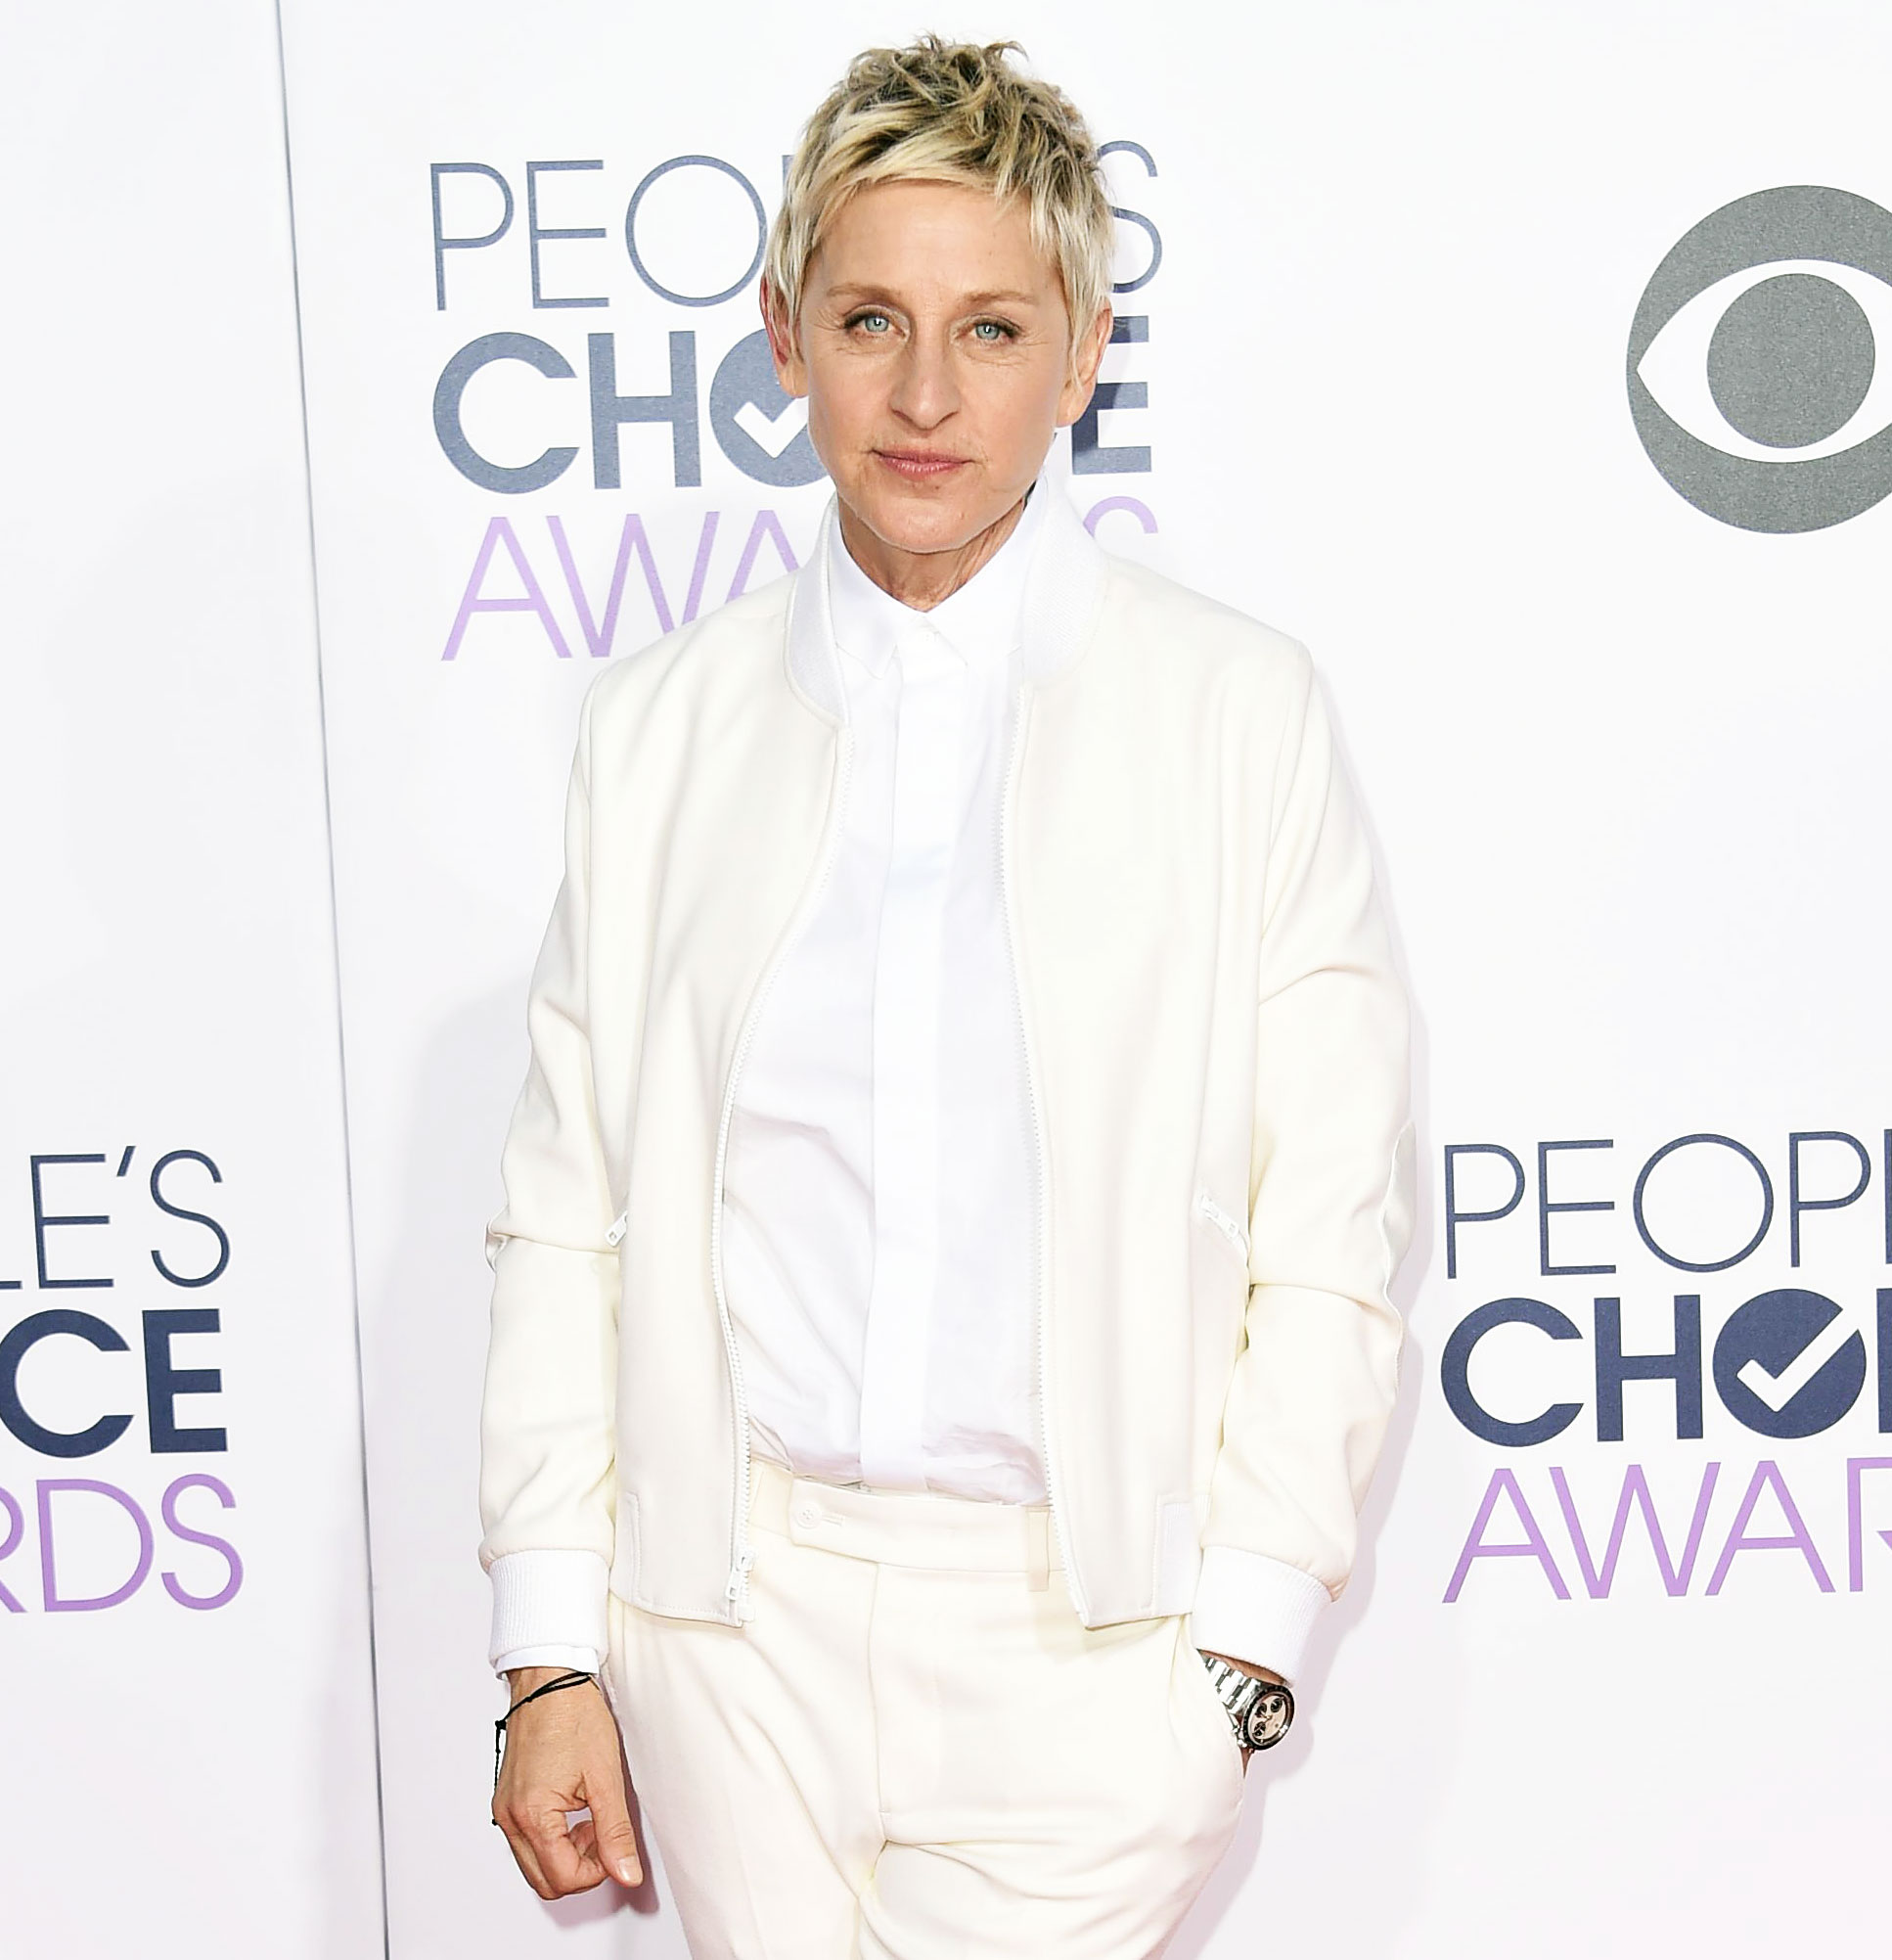 Ellen DeGeneres Speaks Out After Toxic Workplace Accusations